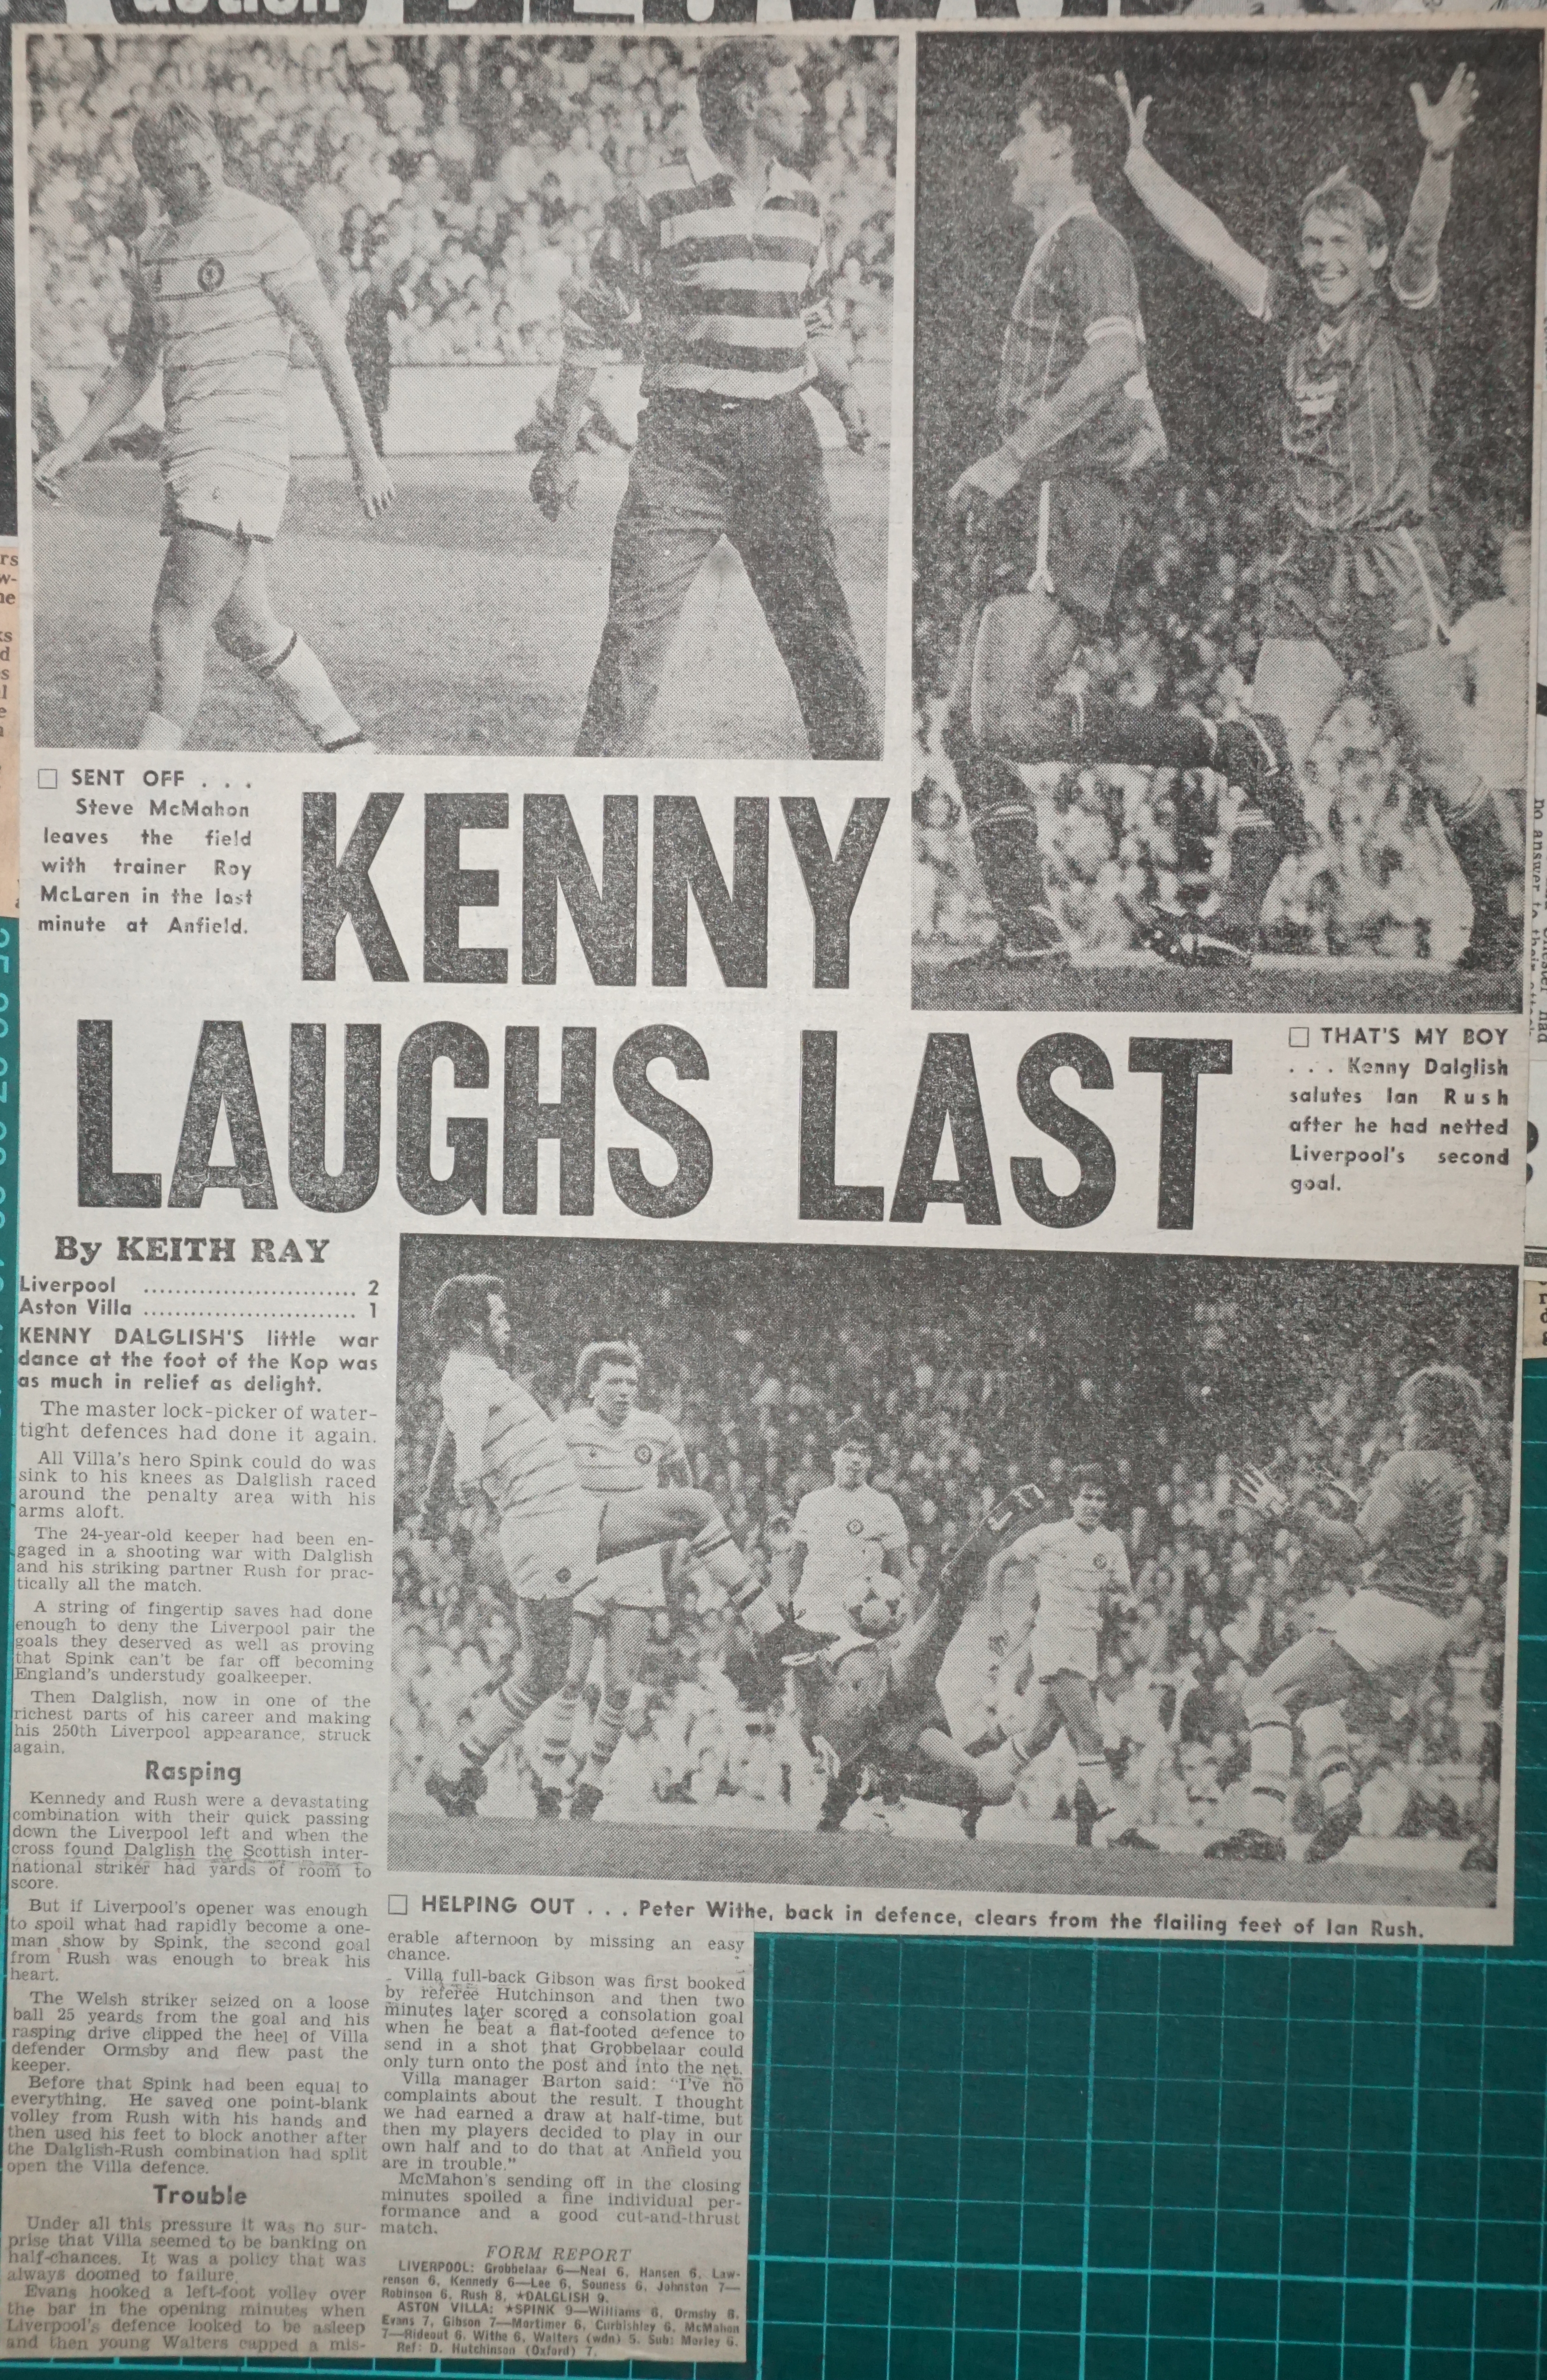 Kenny laughs last - 17 September 1983